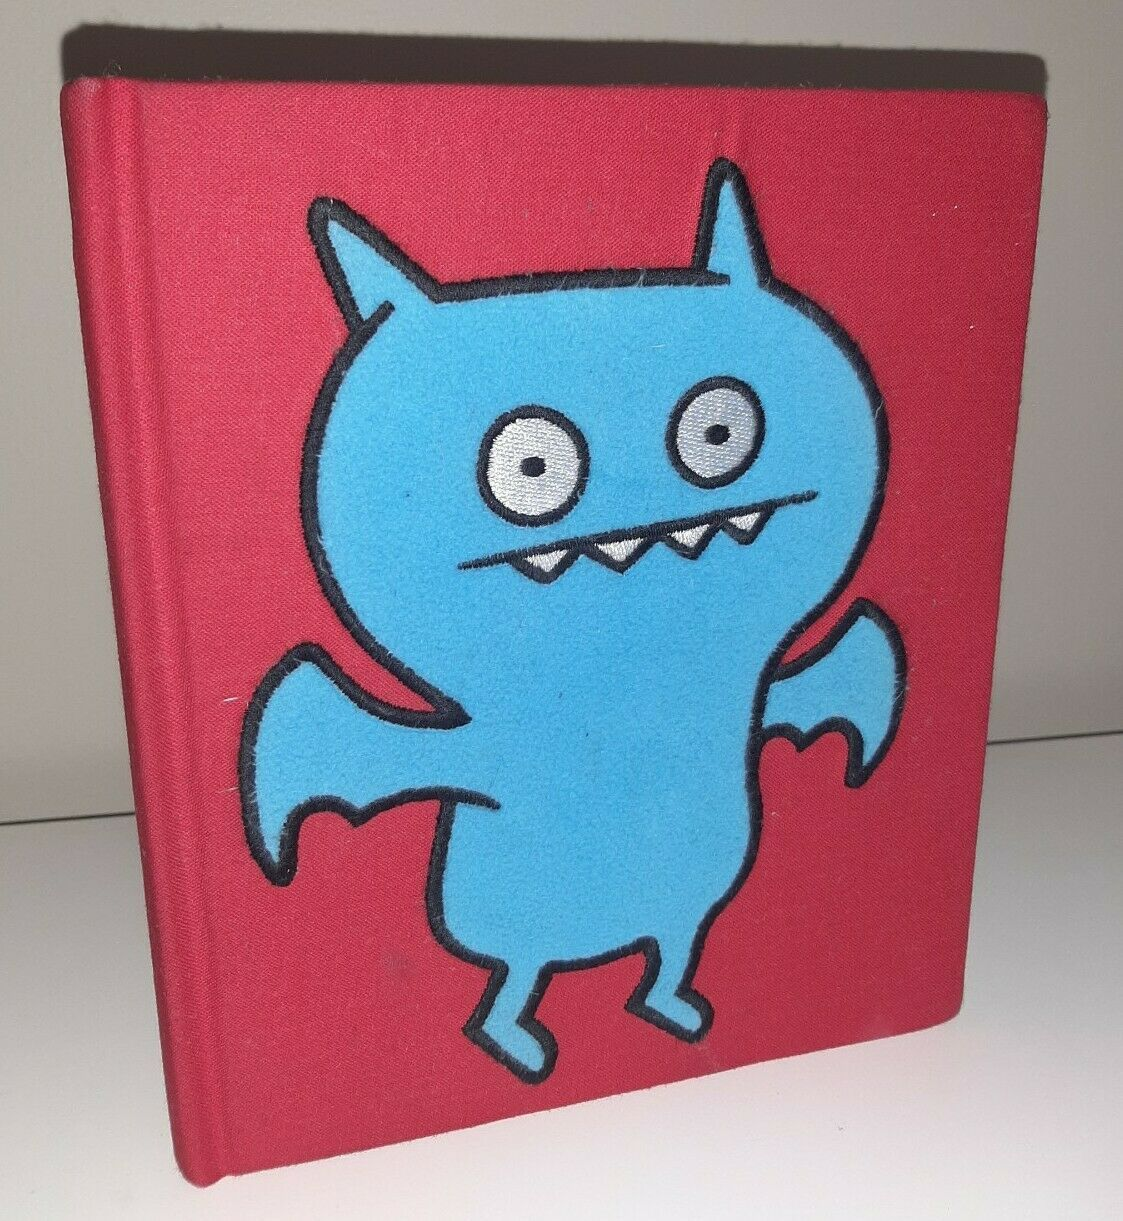 Primary image for UglyDoll Chilly Chilly Ice-Bat signed by creators Sun-Min Kim & David Horvath